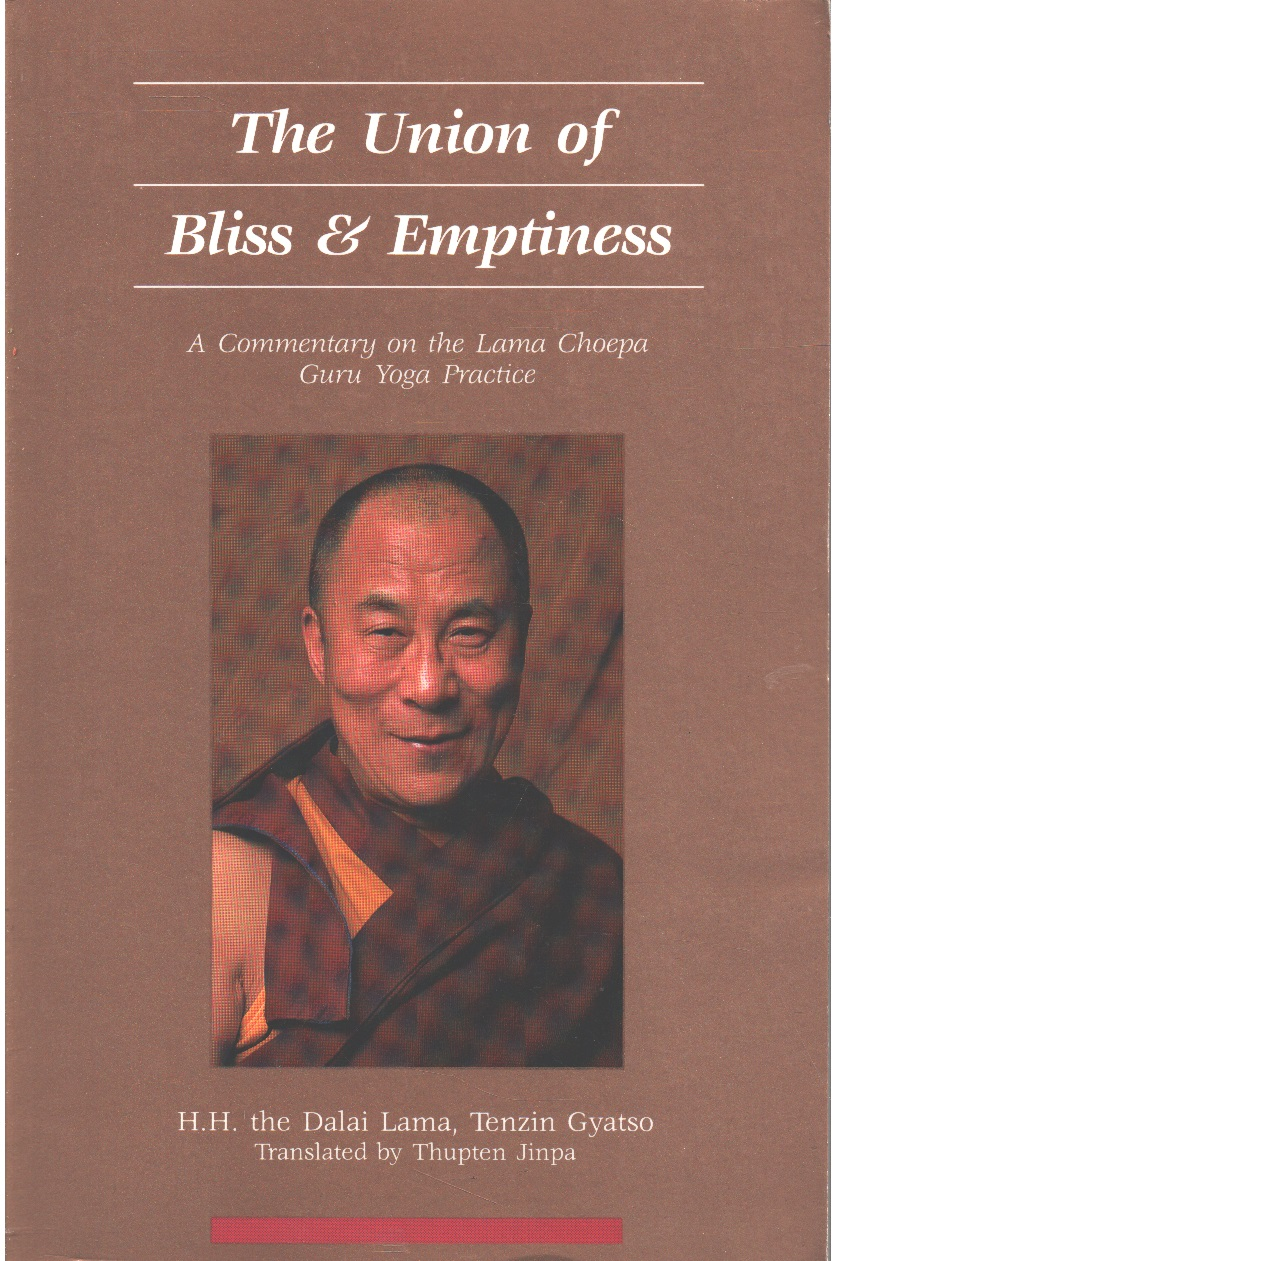 The Union of Bliss and Emptiness: A Commentary on Guru Yoga Practice - Lama, Dalai